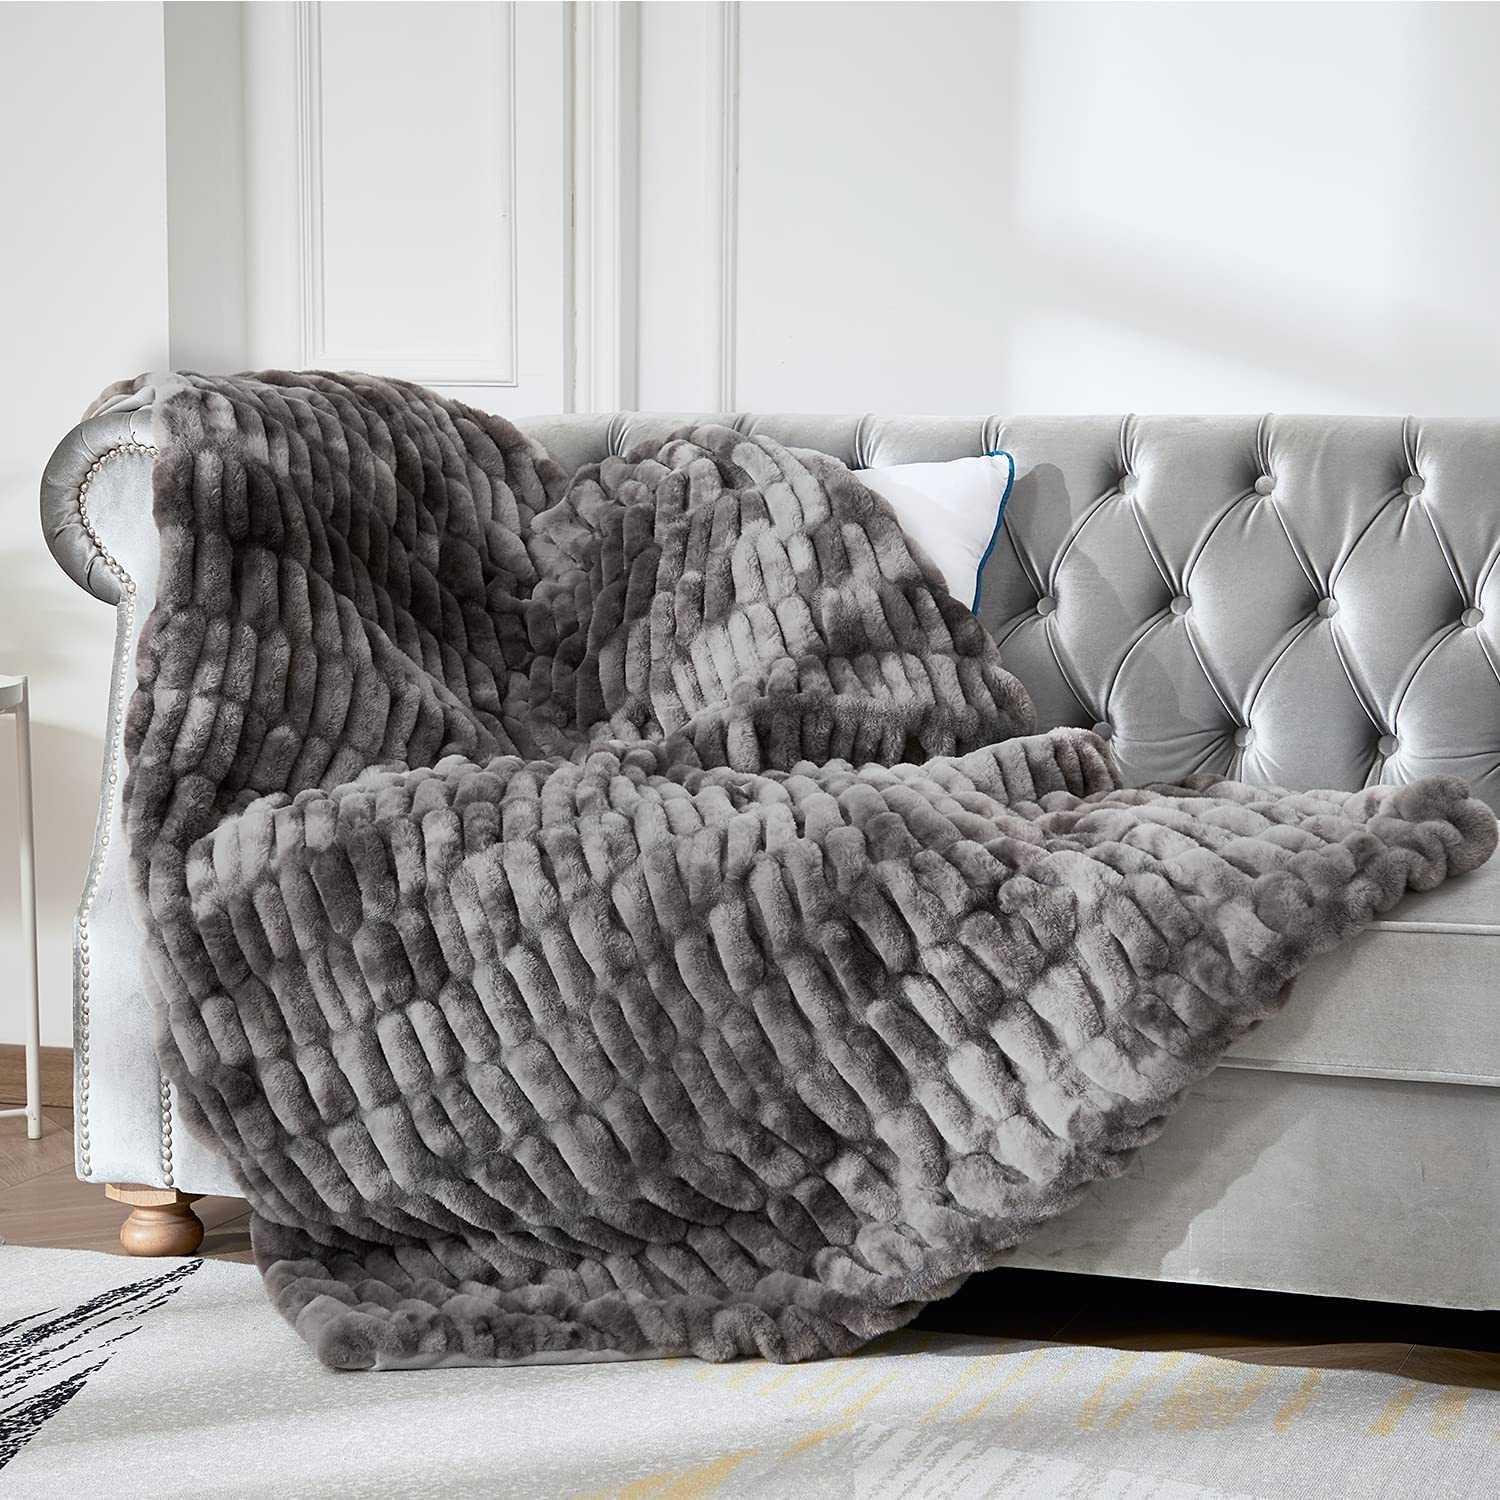 Sylanfia Grey Faux Fur Throws and Washable Sofa Blankets Today's only 5 ☆ popular for Co